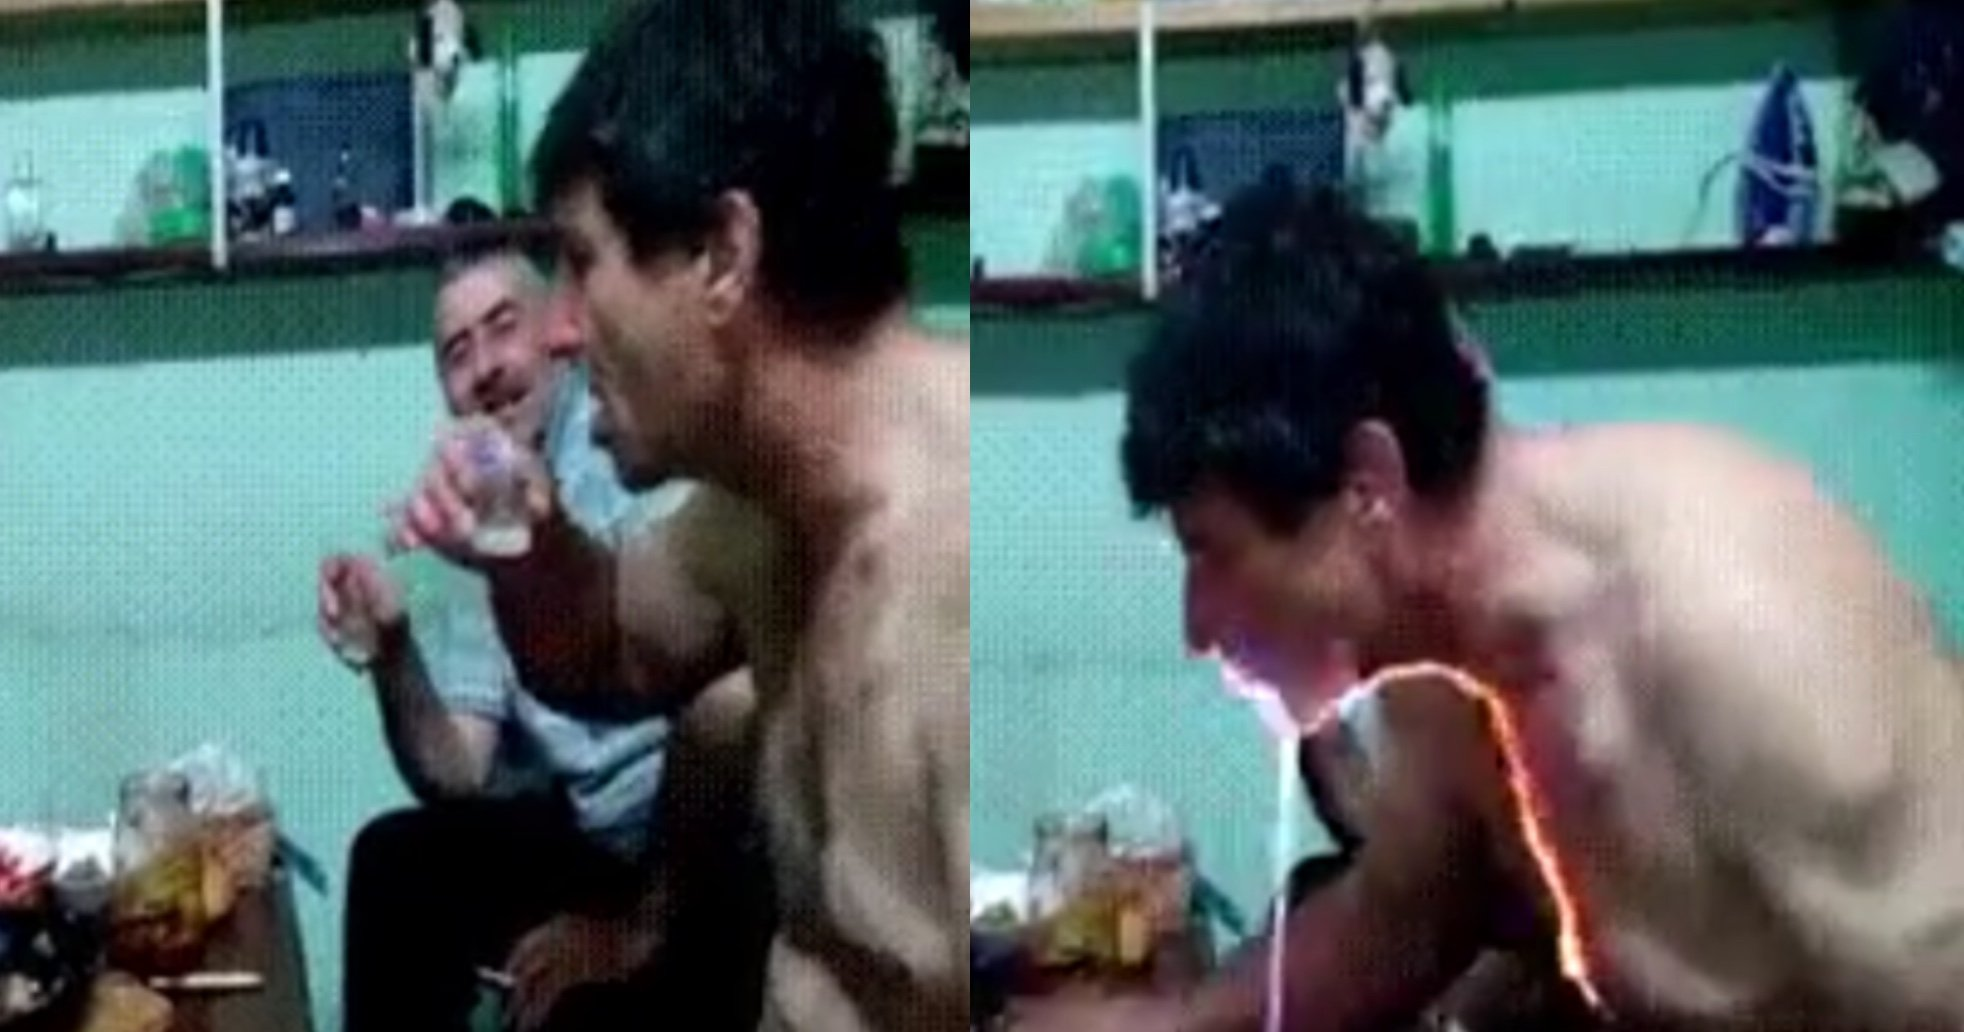 flaming.jpg?resize=412,275 - A Video Of A Man's Throat Burning After Drinking A 96-Percent Alcohol Goes Viral